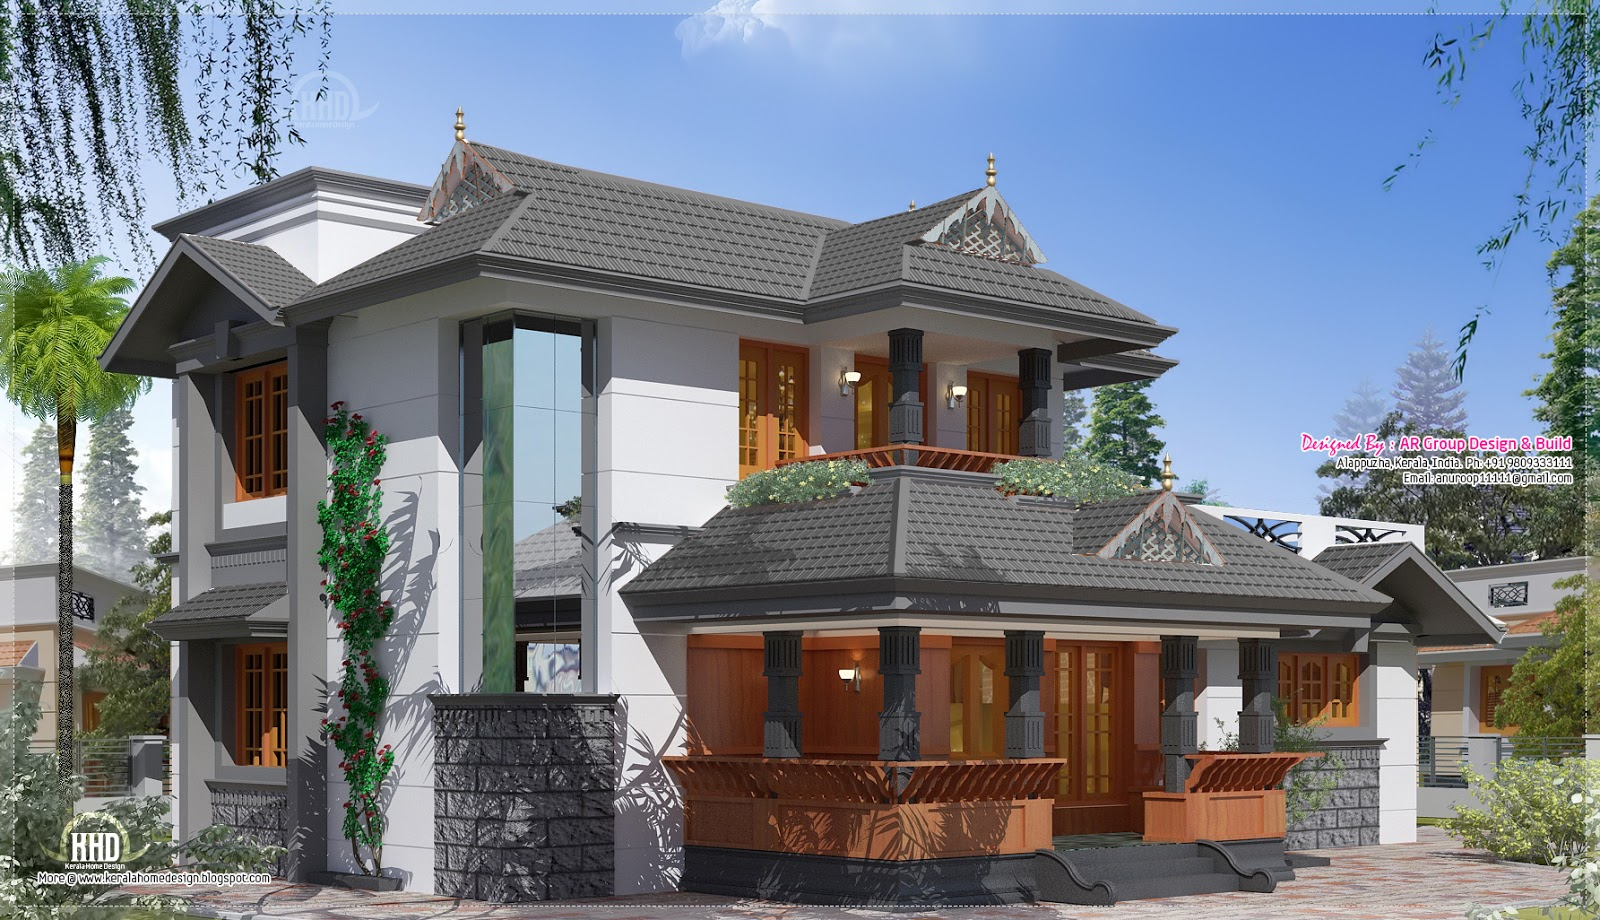 Tradition mix kerala villa in 1950 kerala home for Kerala traditional home plans